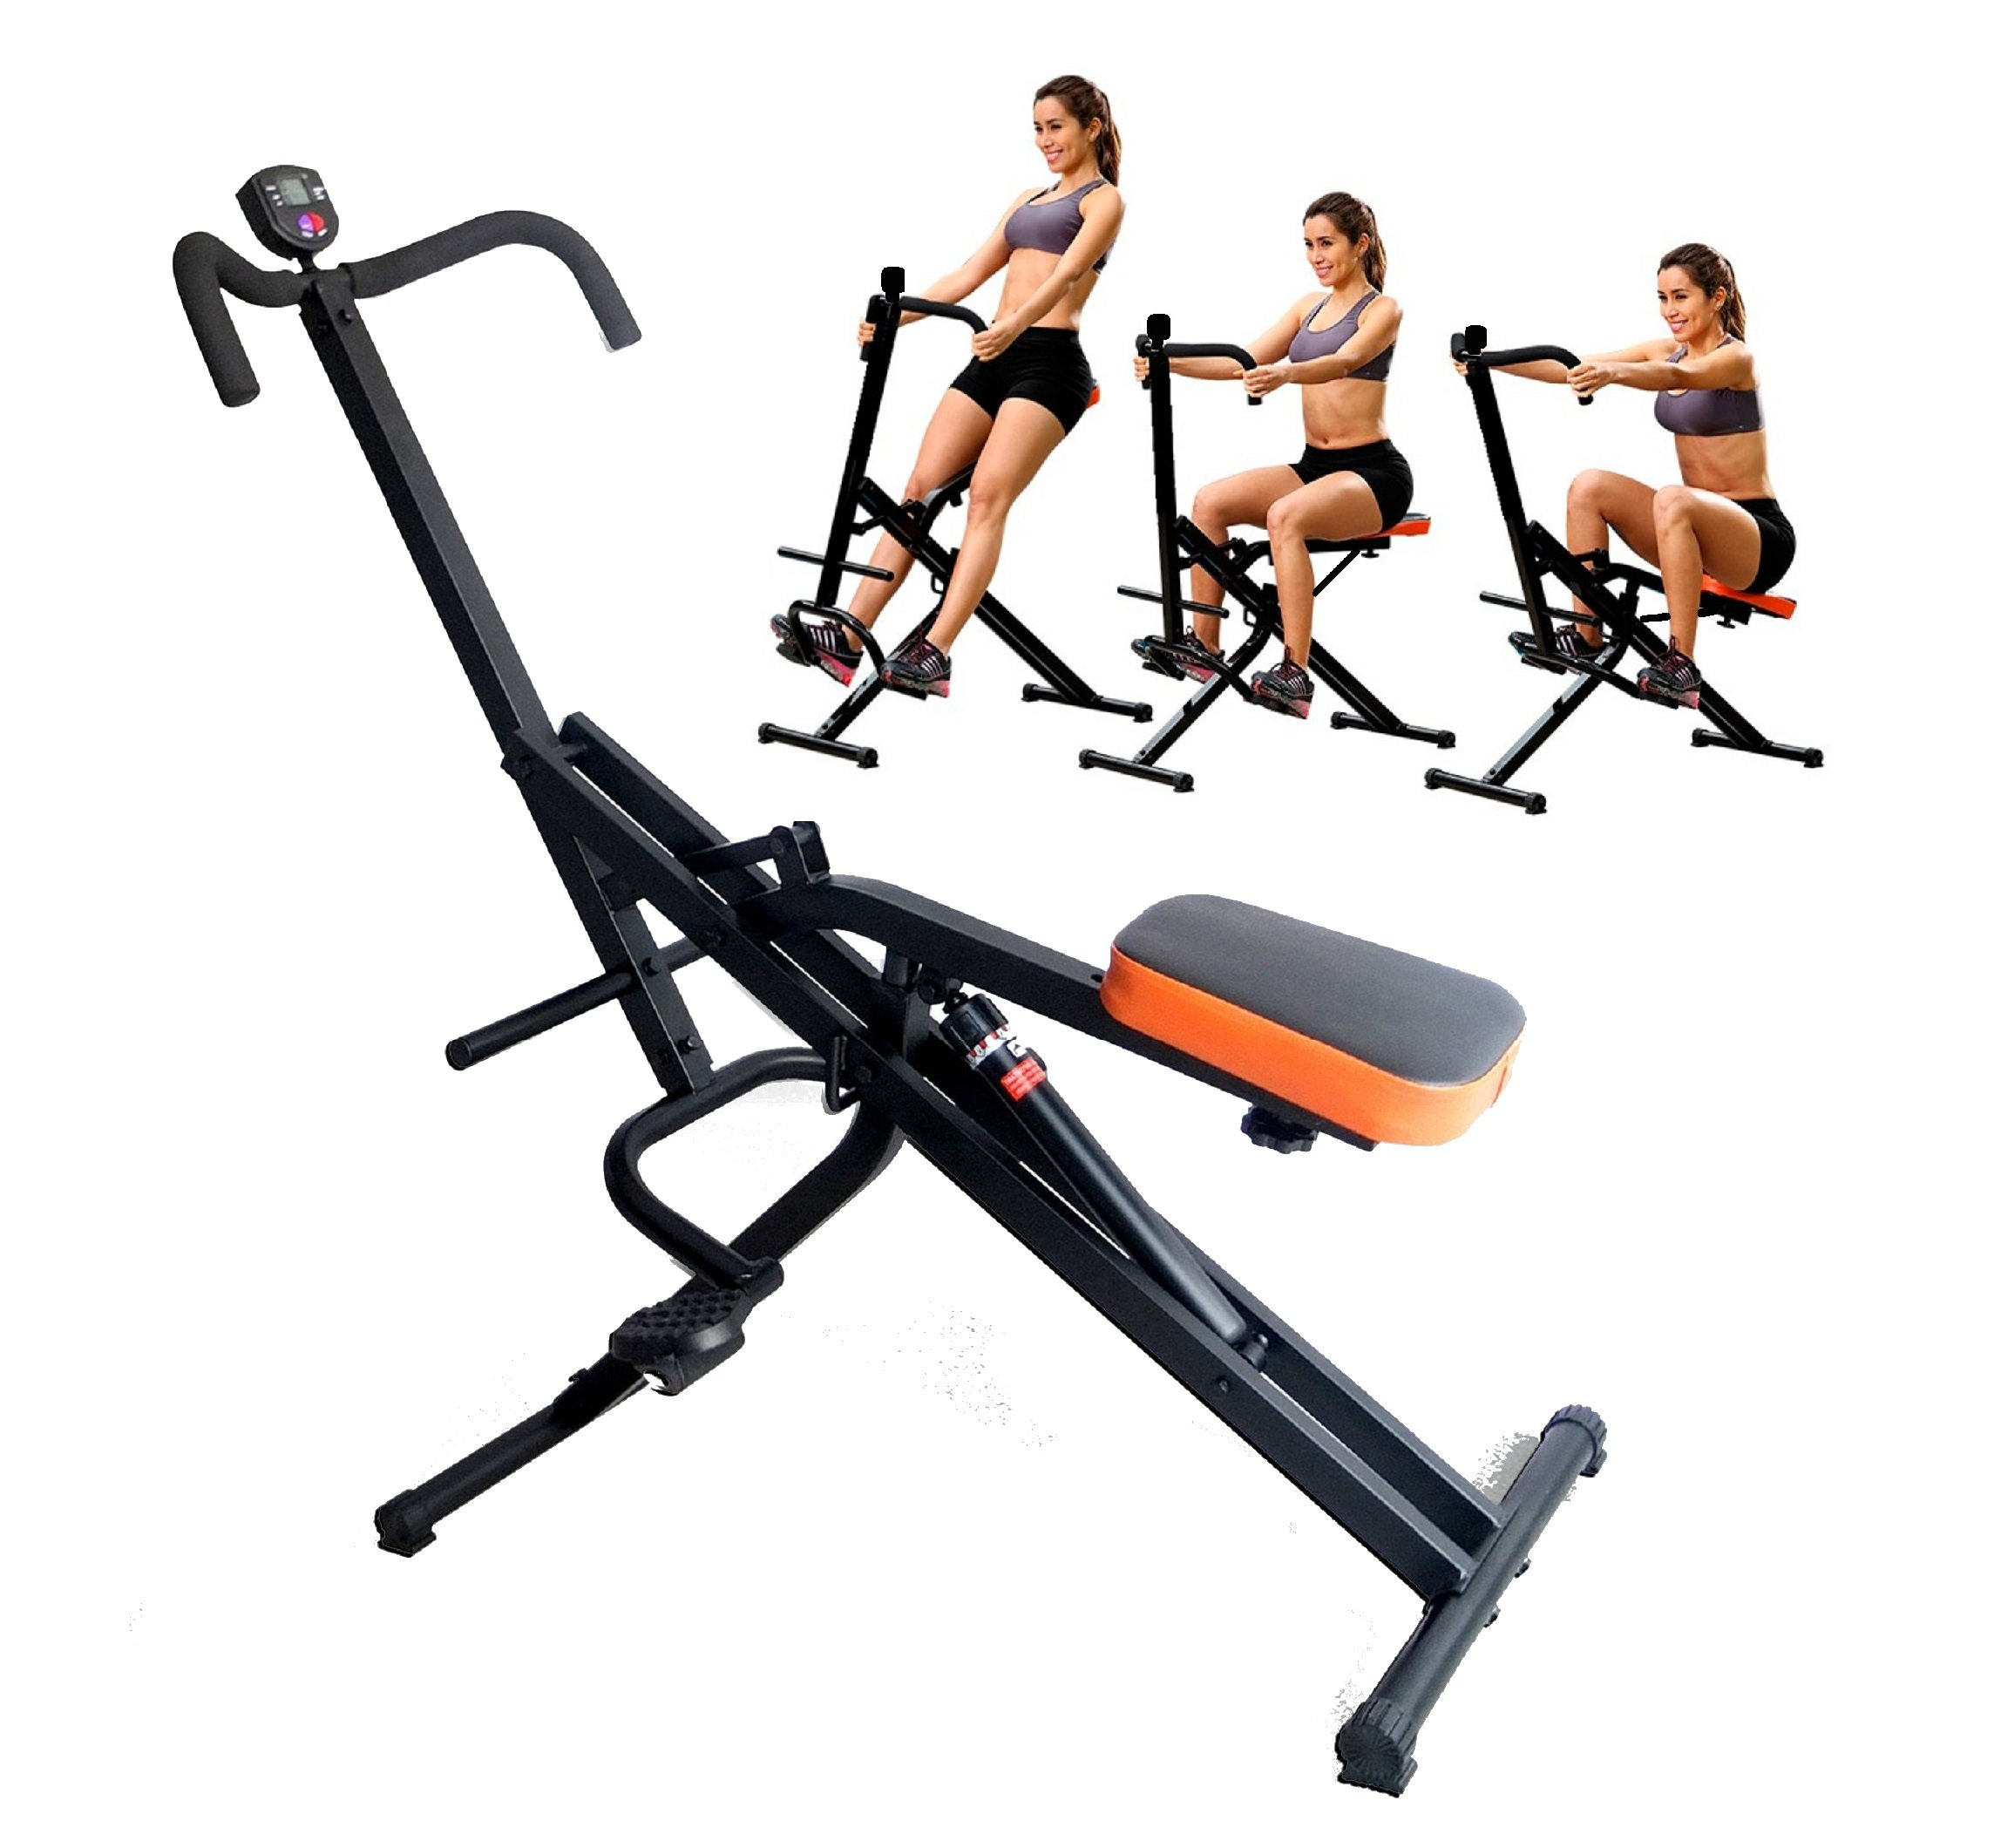 TOTAL CRUNCH Full Ab Body Fitness Horse Riding with Monitor and 12 Hydraulic Resistance by Total Crunch TM (Image #1)